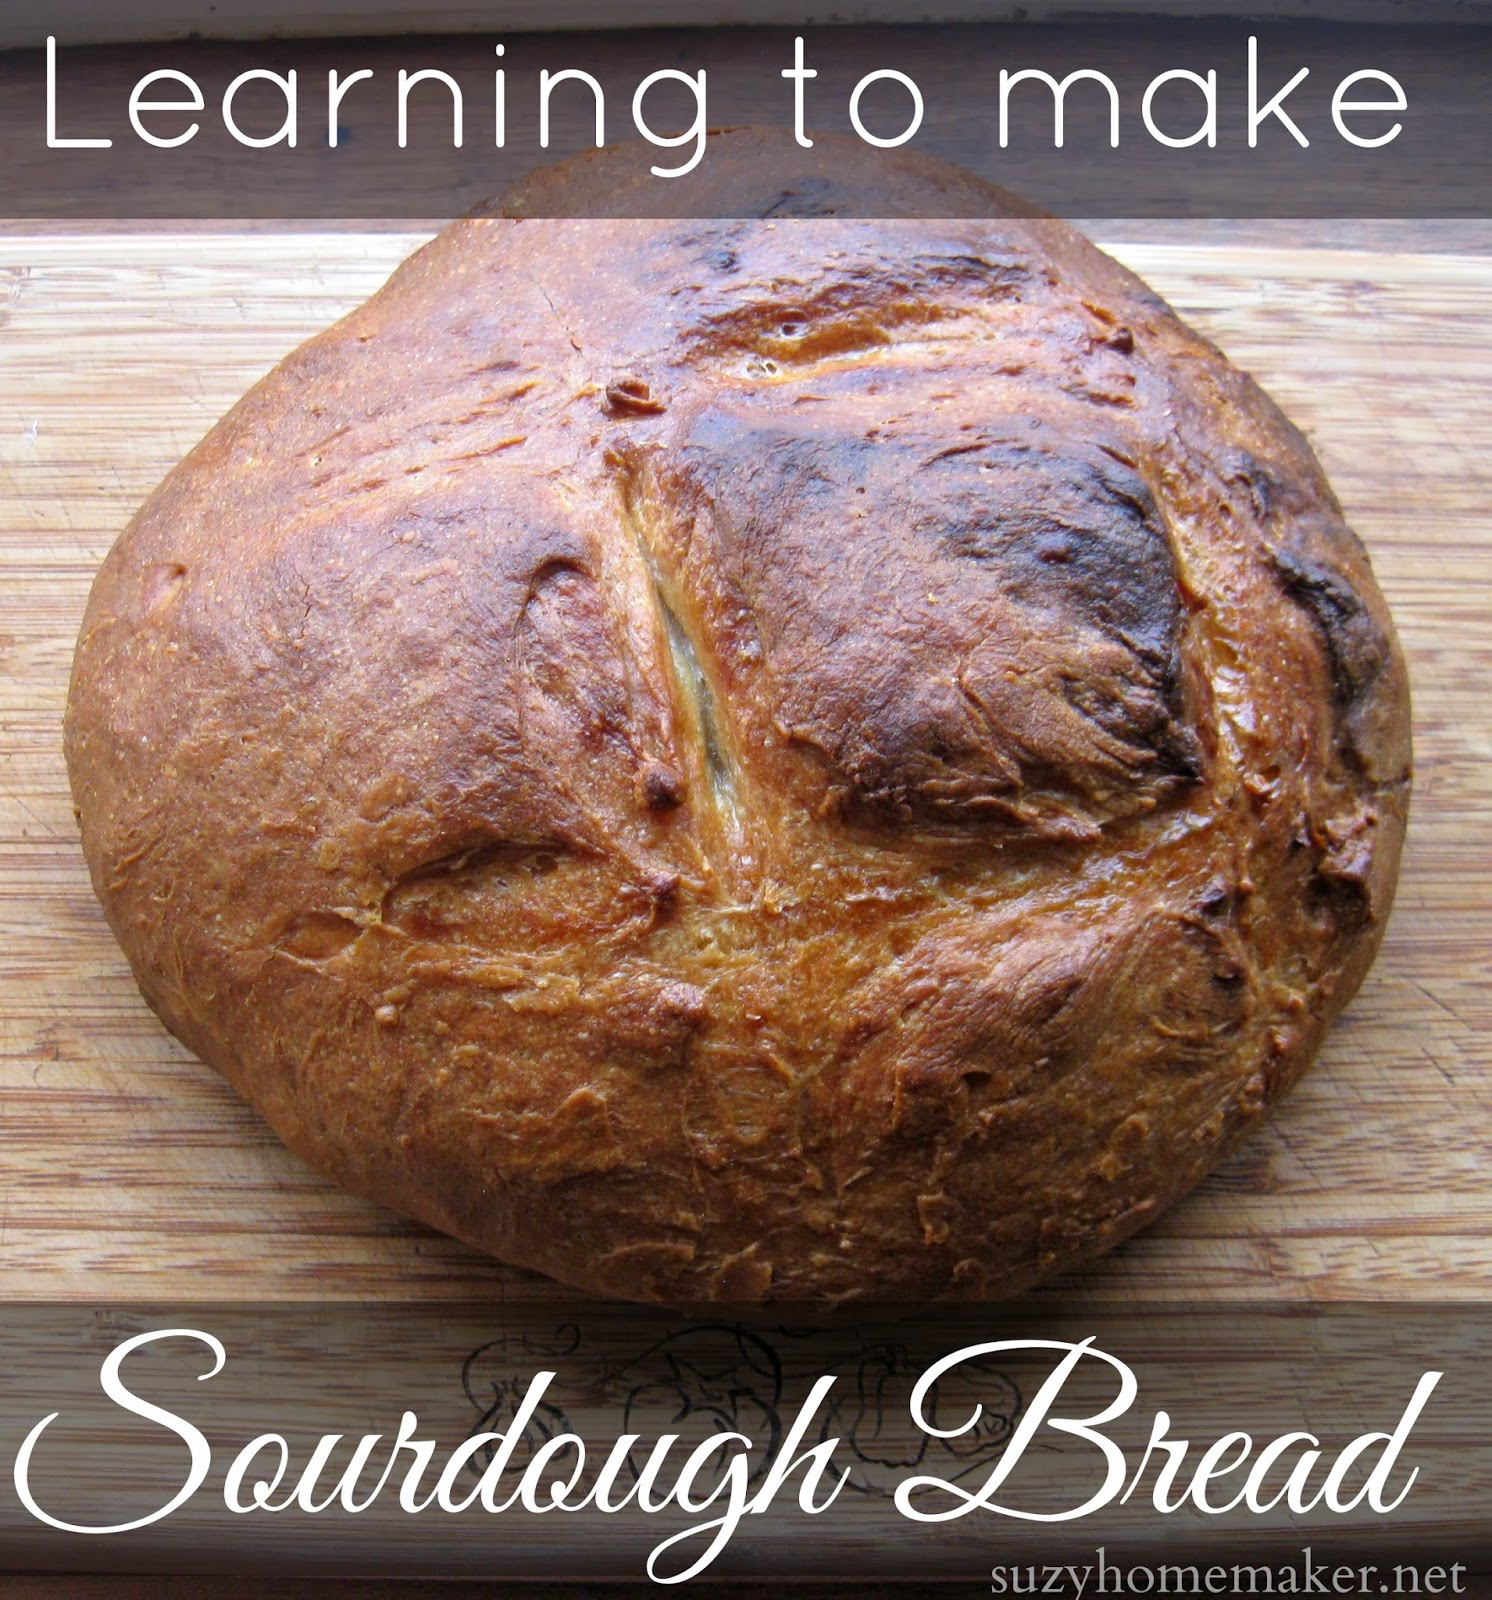 Learning to make sourdough bread | suzyhomemaker.net